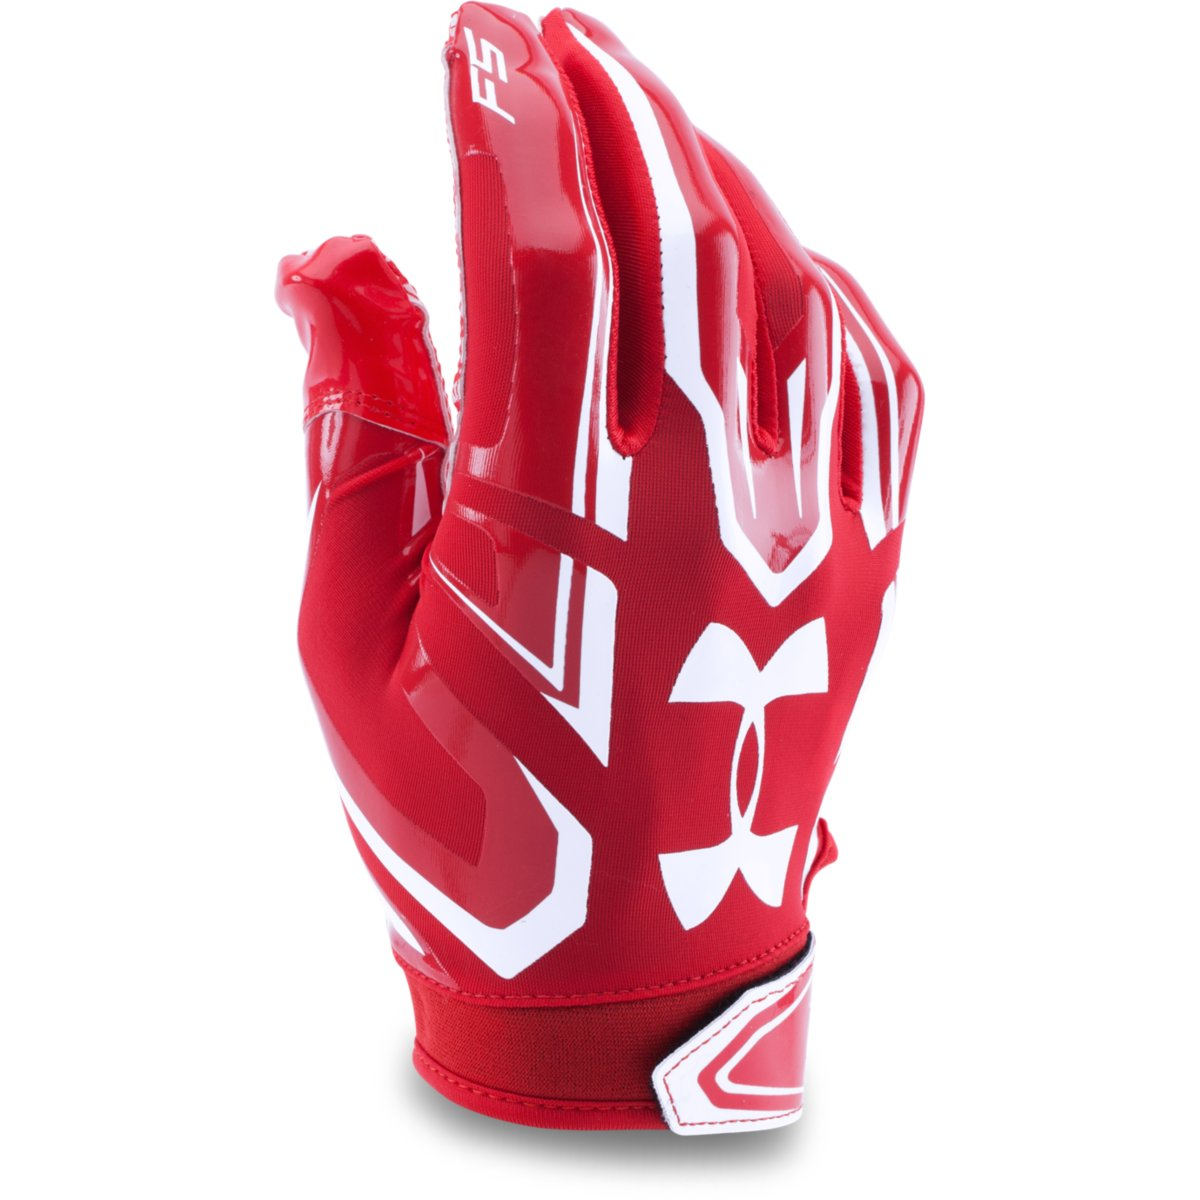 Boys Under Armour F5 Football Gloves Red 600 Youth Large Ebay